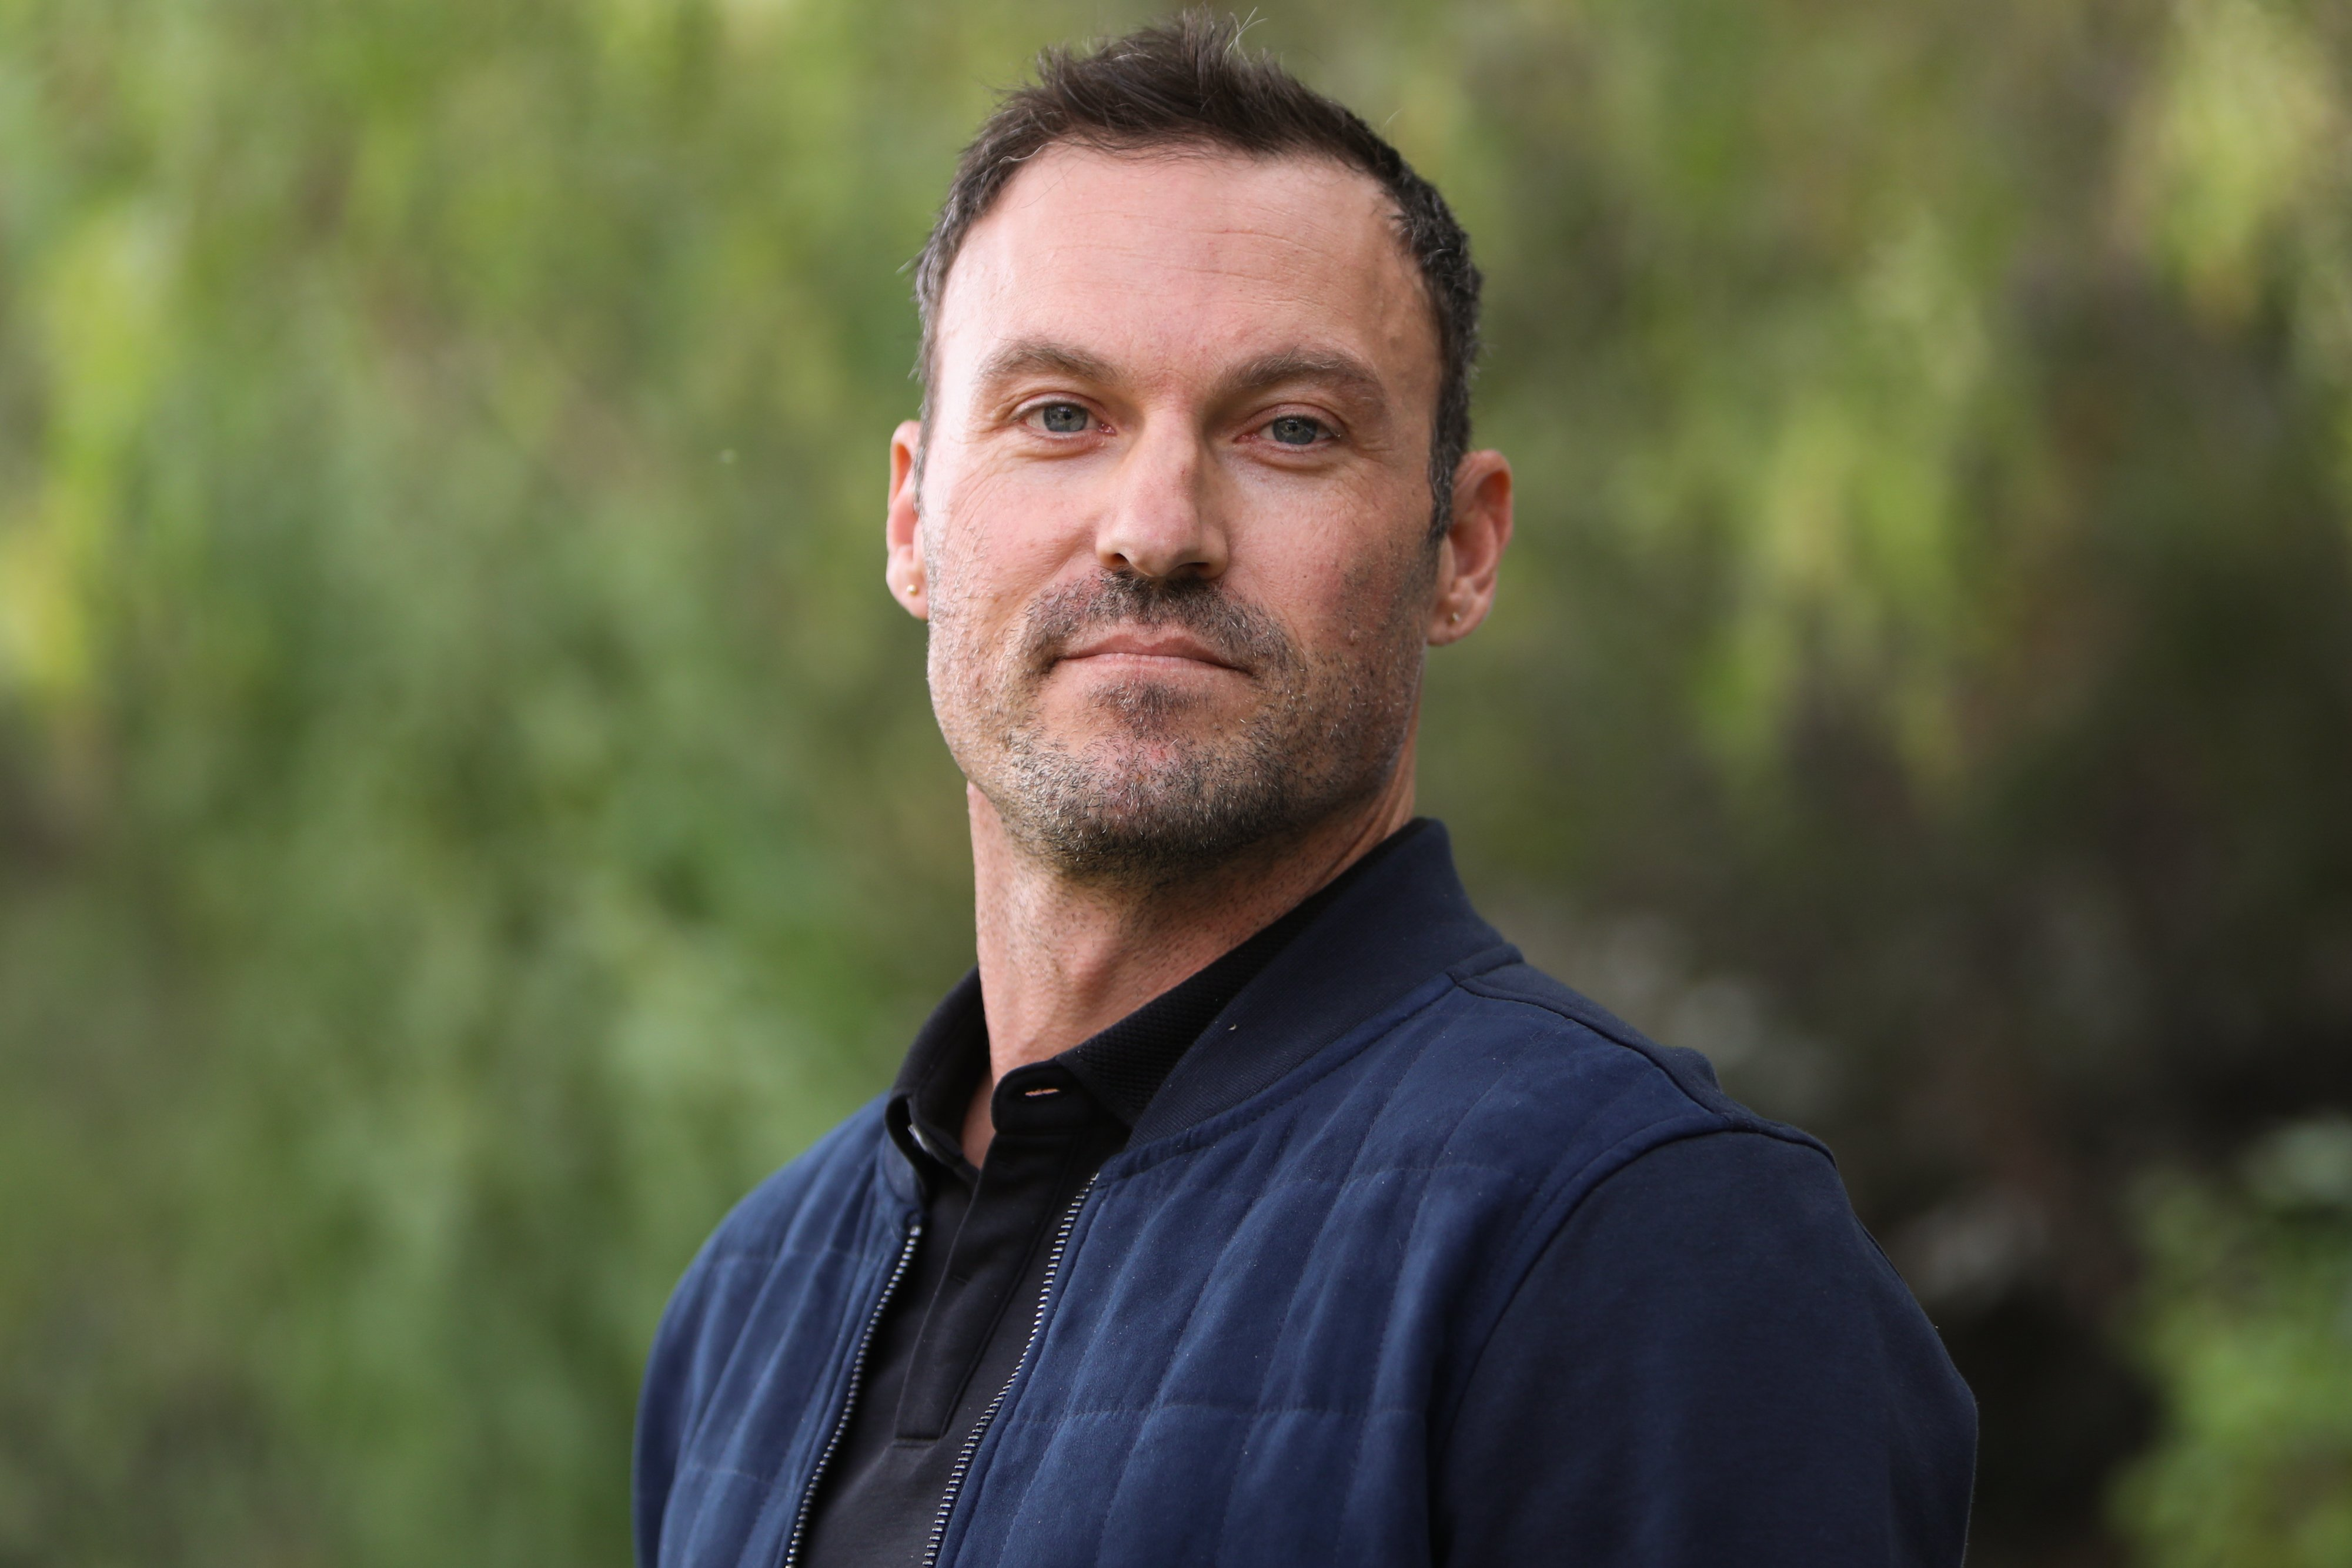 """Brian Austin Green visits Hallmark Channel's """"Home & Family"""" at Universal Studios Hollywood on November 15, 2019 in Universal City, California 